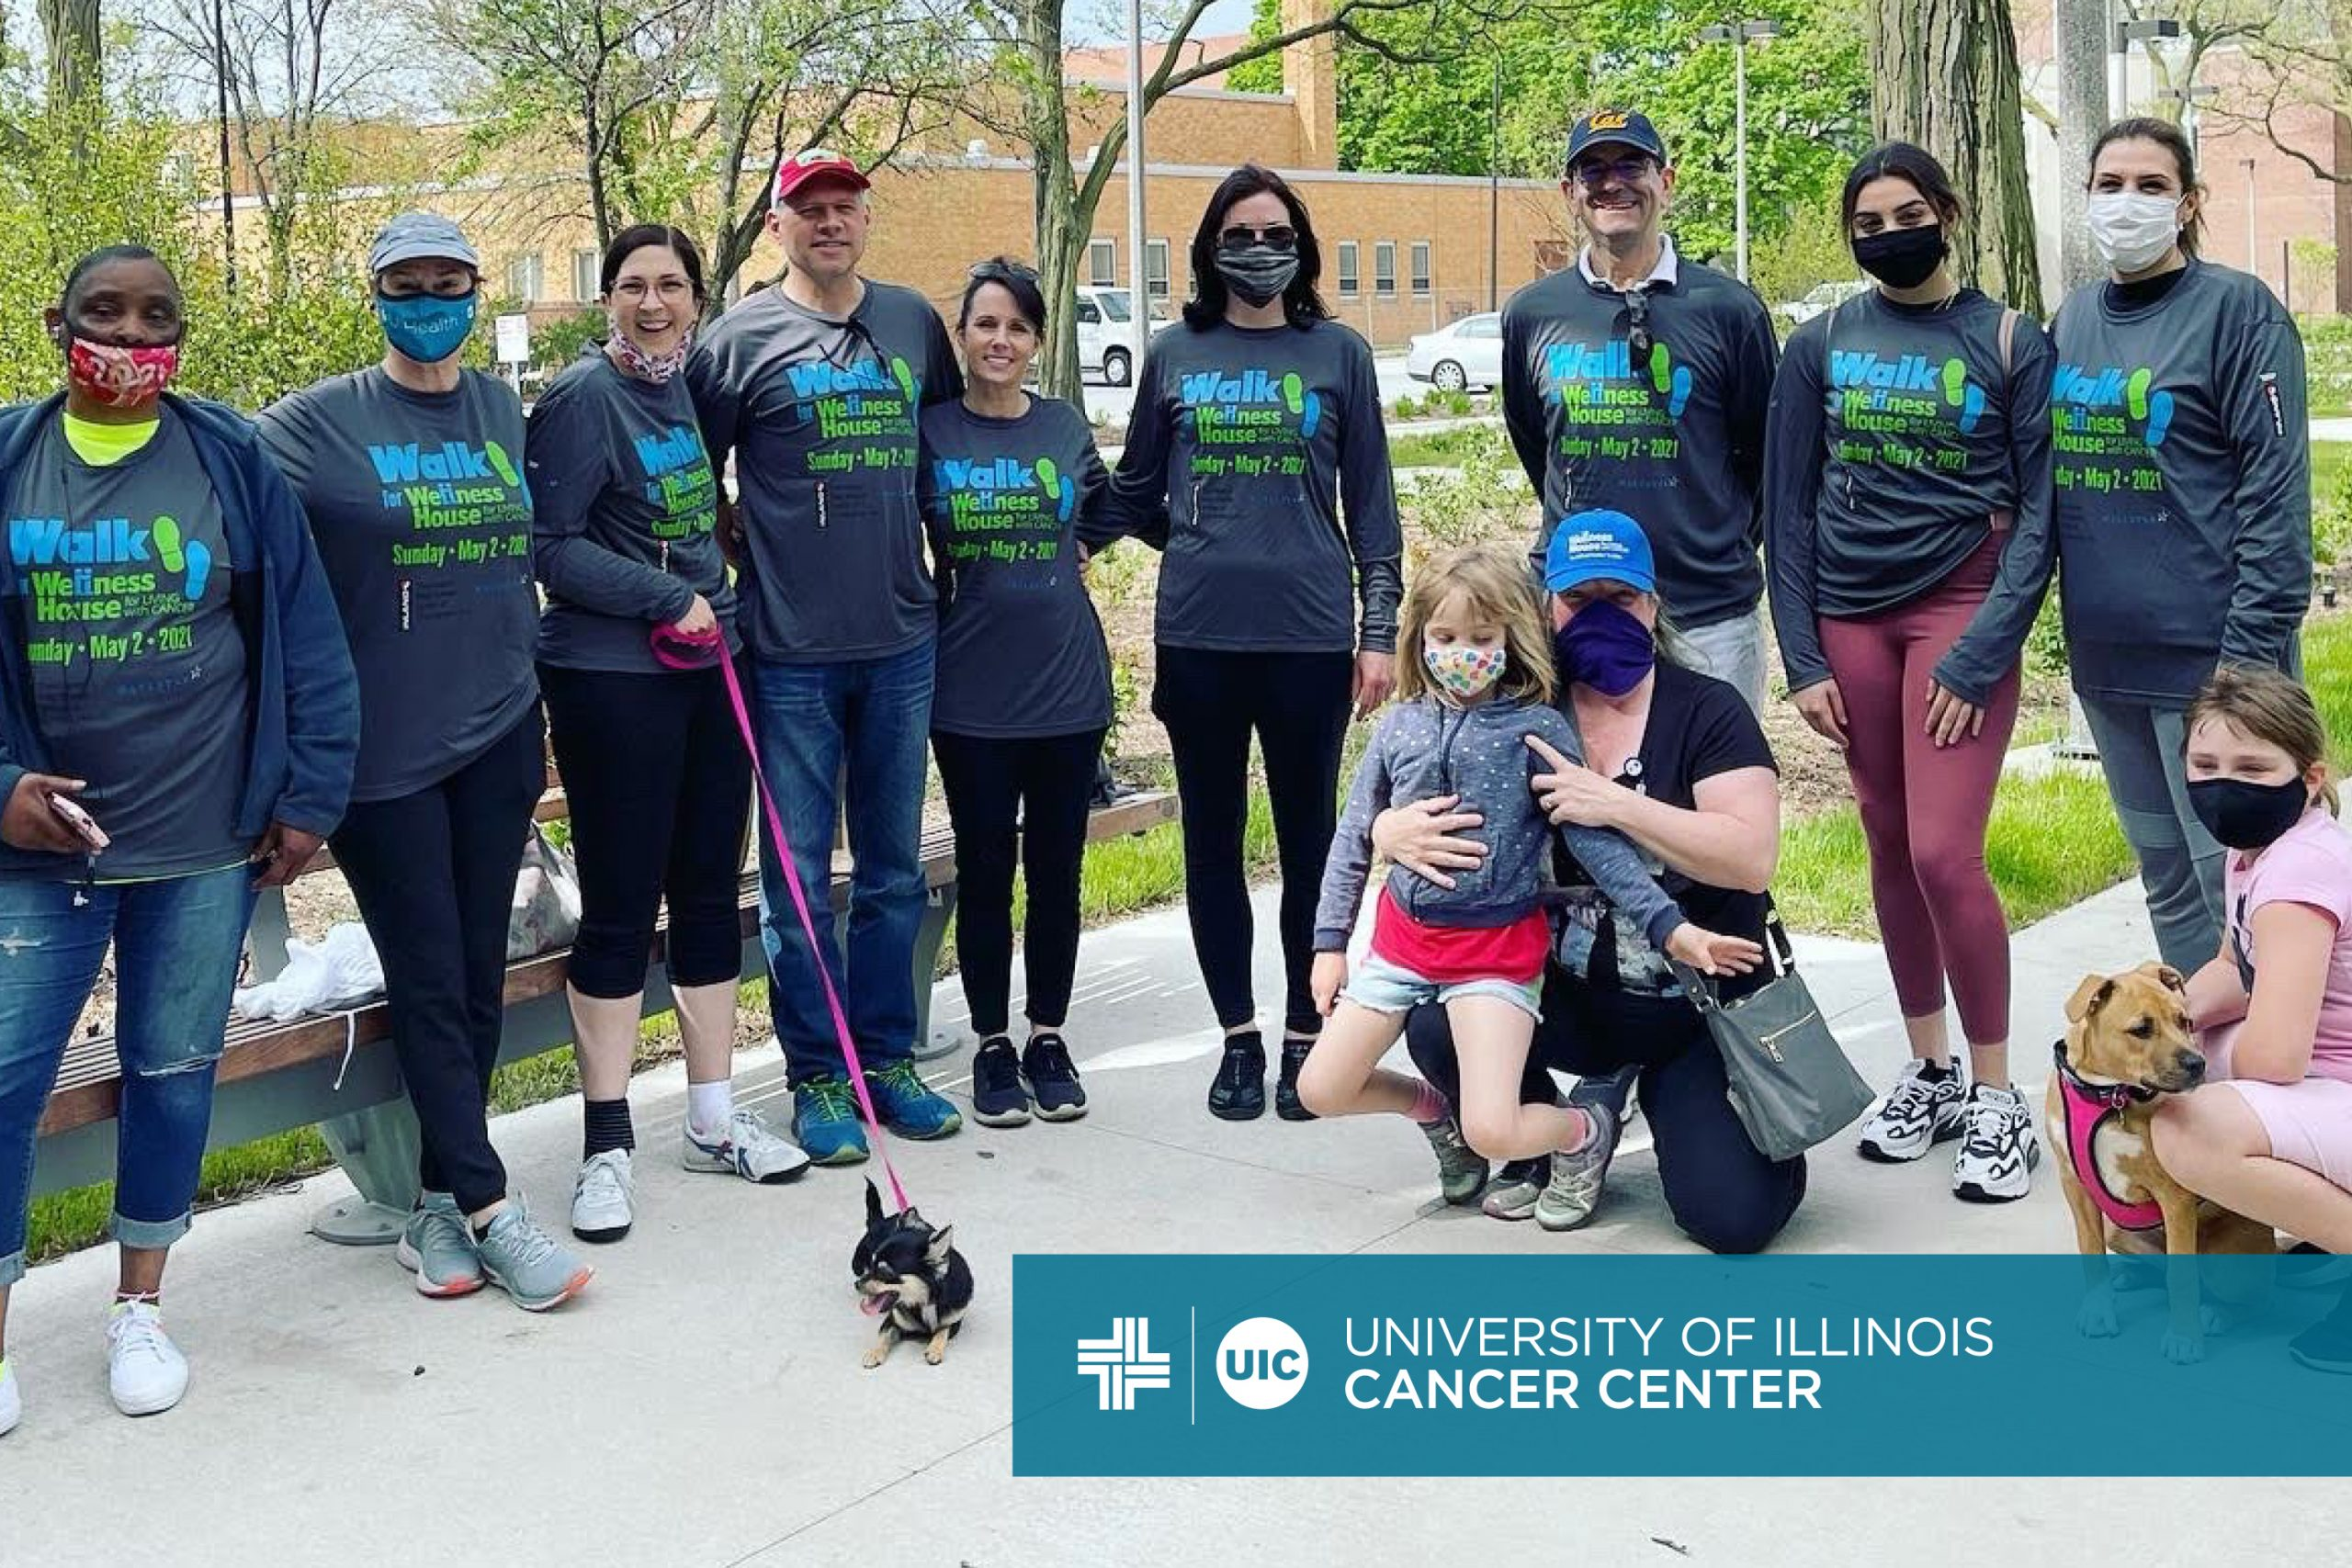 Photo of the Walk for Wellness House team and the University of Illinois Cancer Center logo